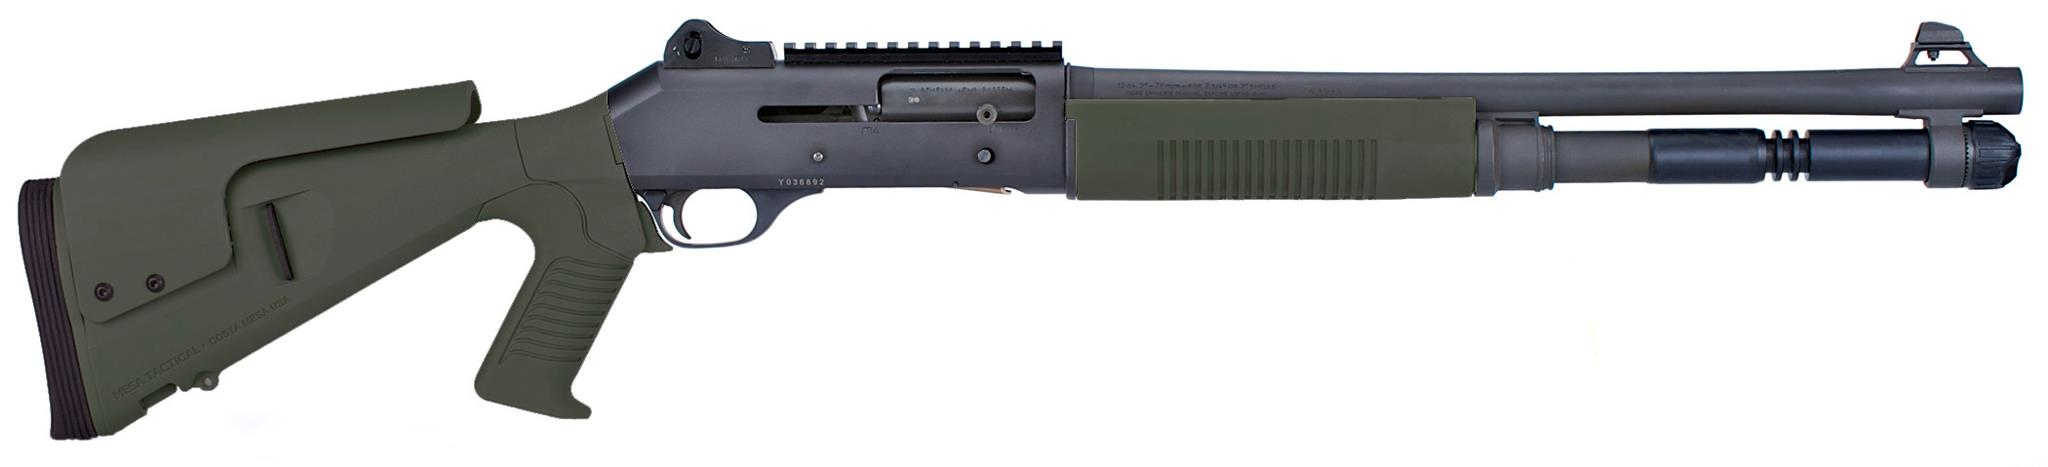 OD GREEN Urbino Stock for Benelli M4 and M1014 Shotguns